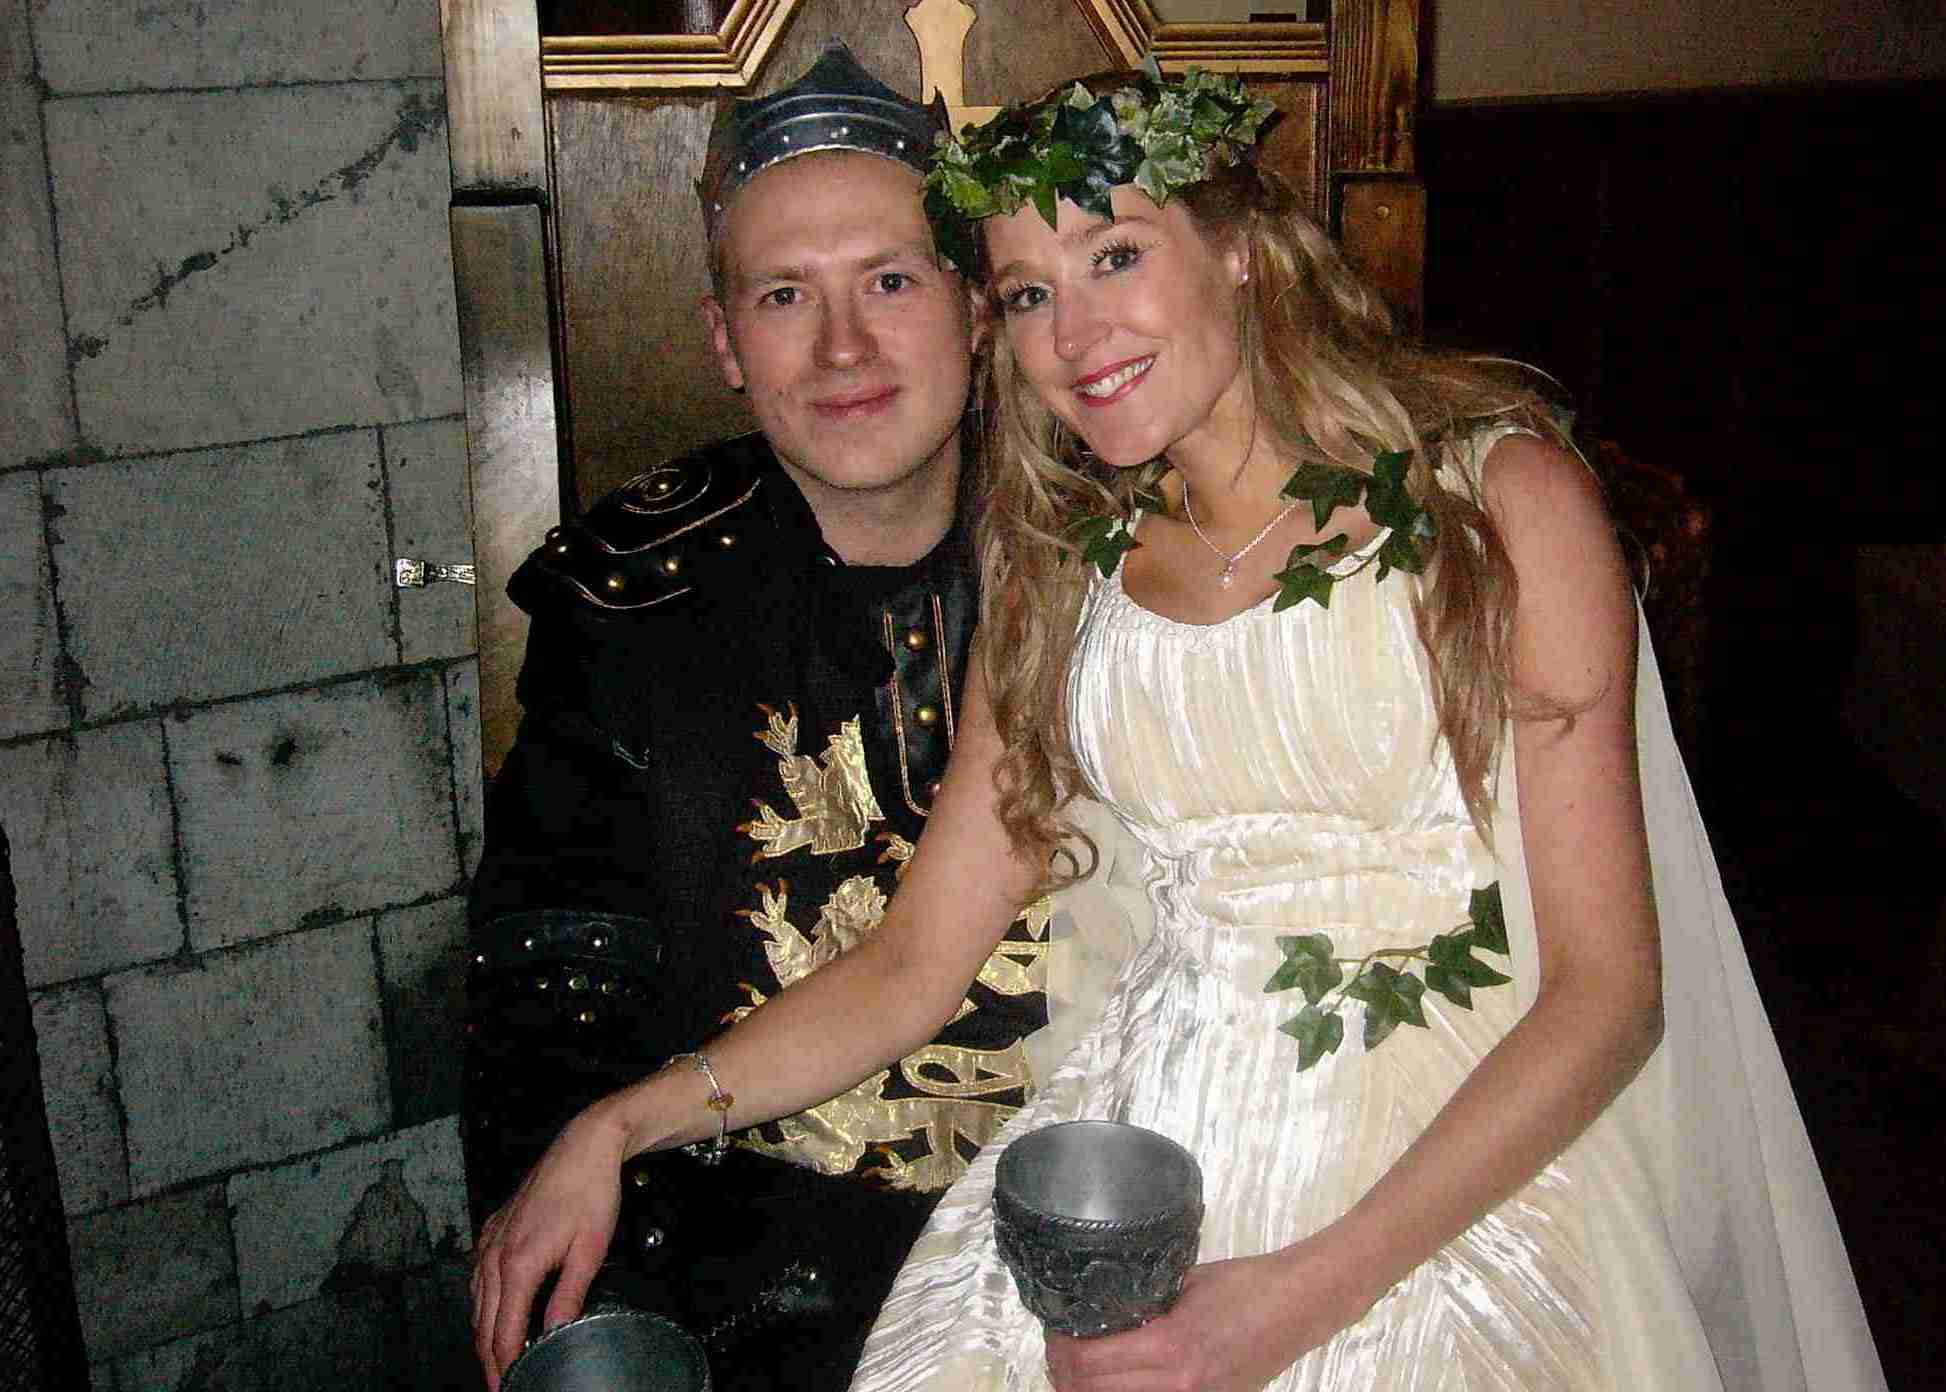 Bride and groom on throne, medieval costume